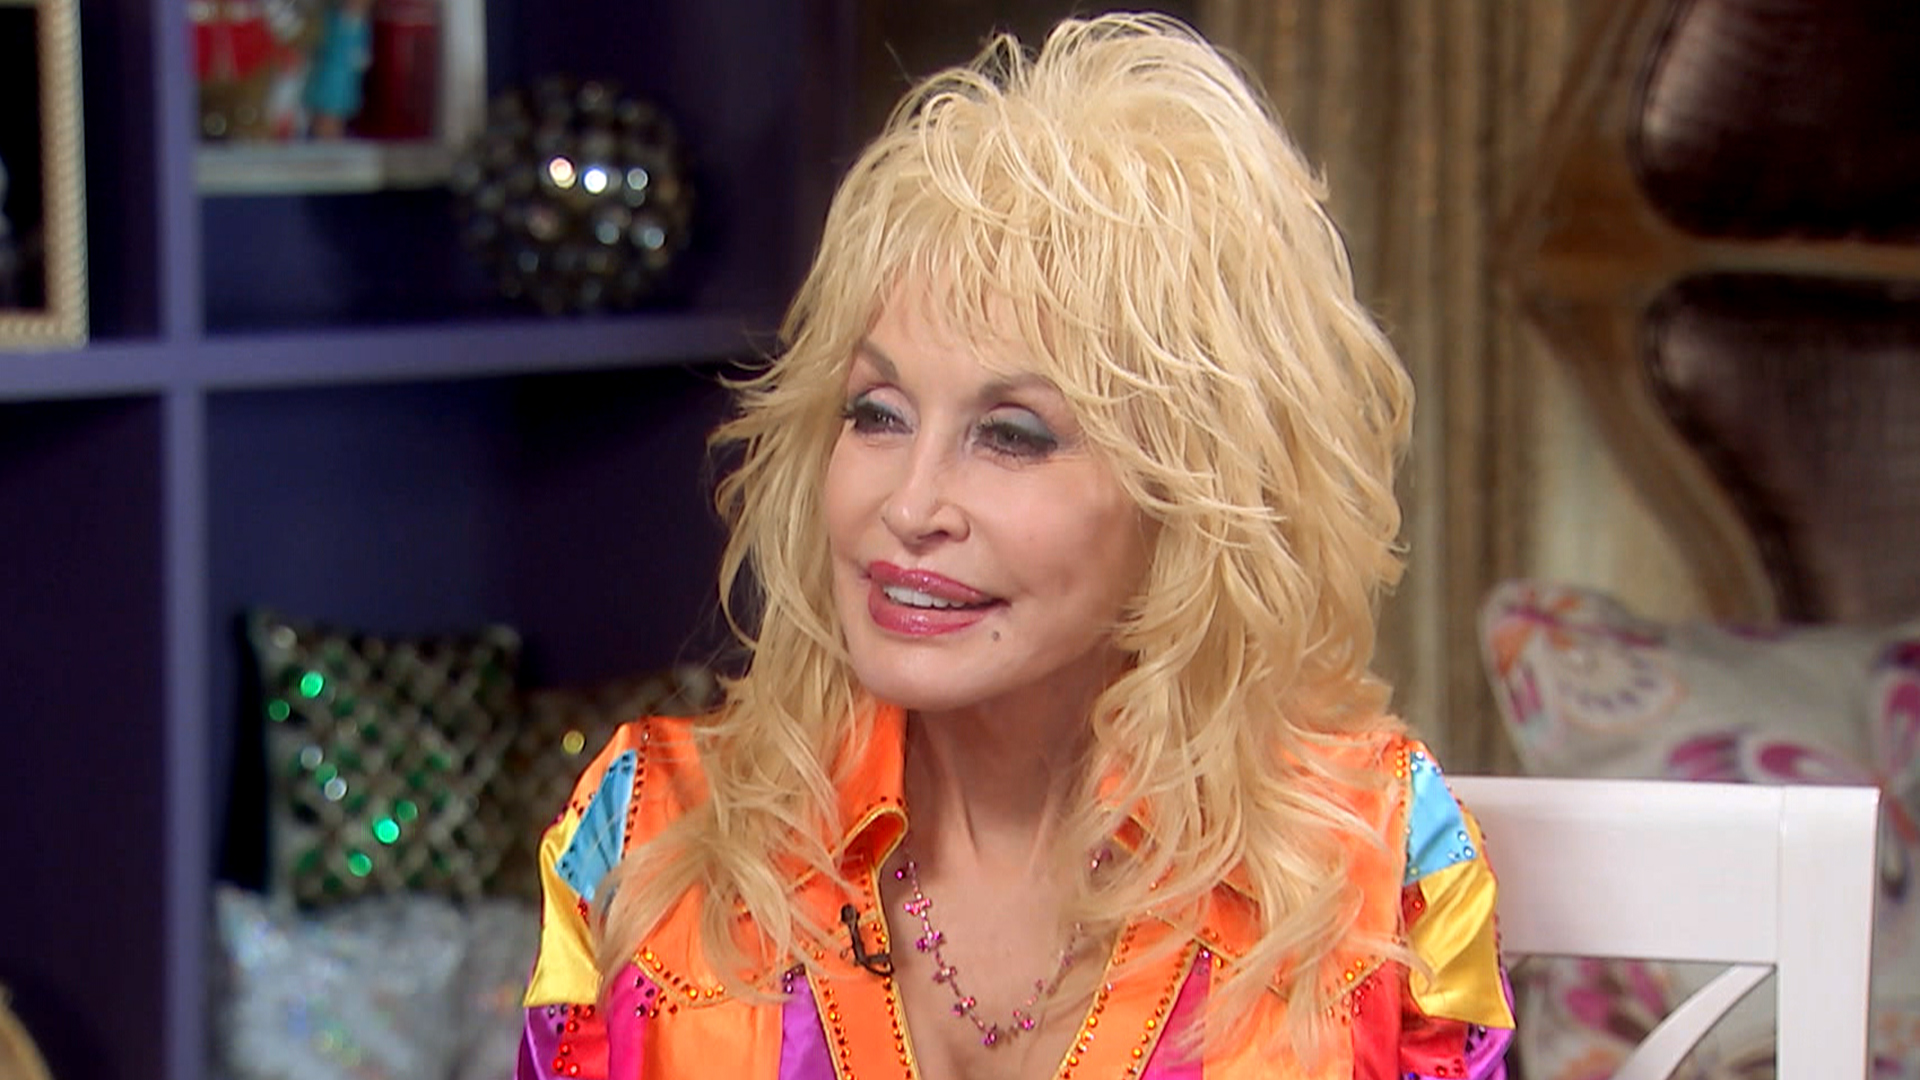 Dolly Parton: Dolly Parton On 'Coat Of Many Colors': 'I've Been Very